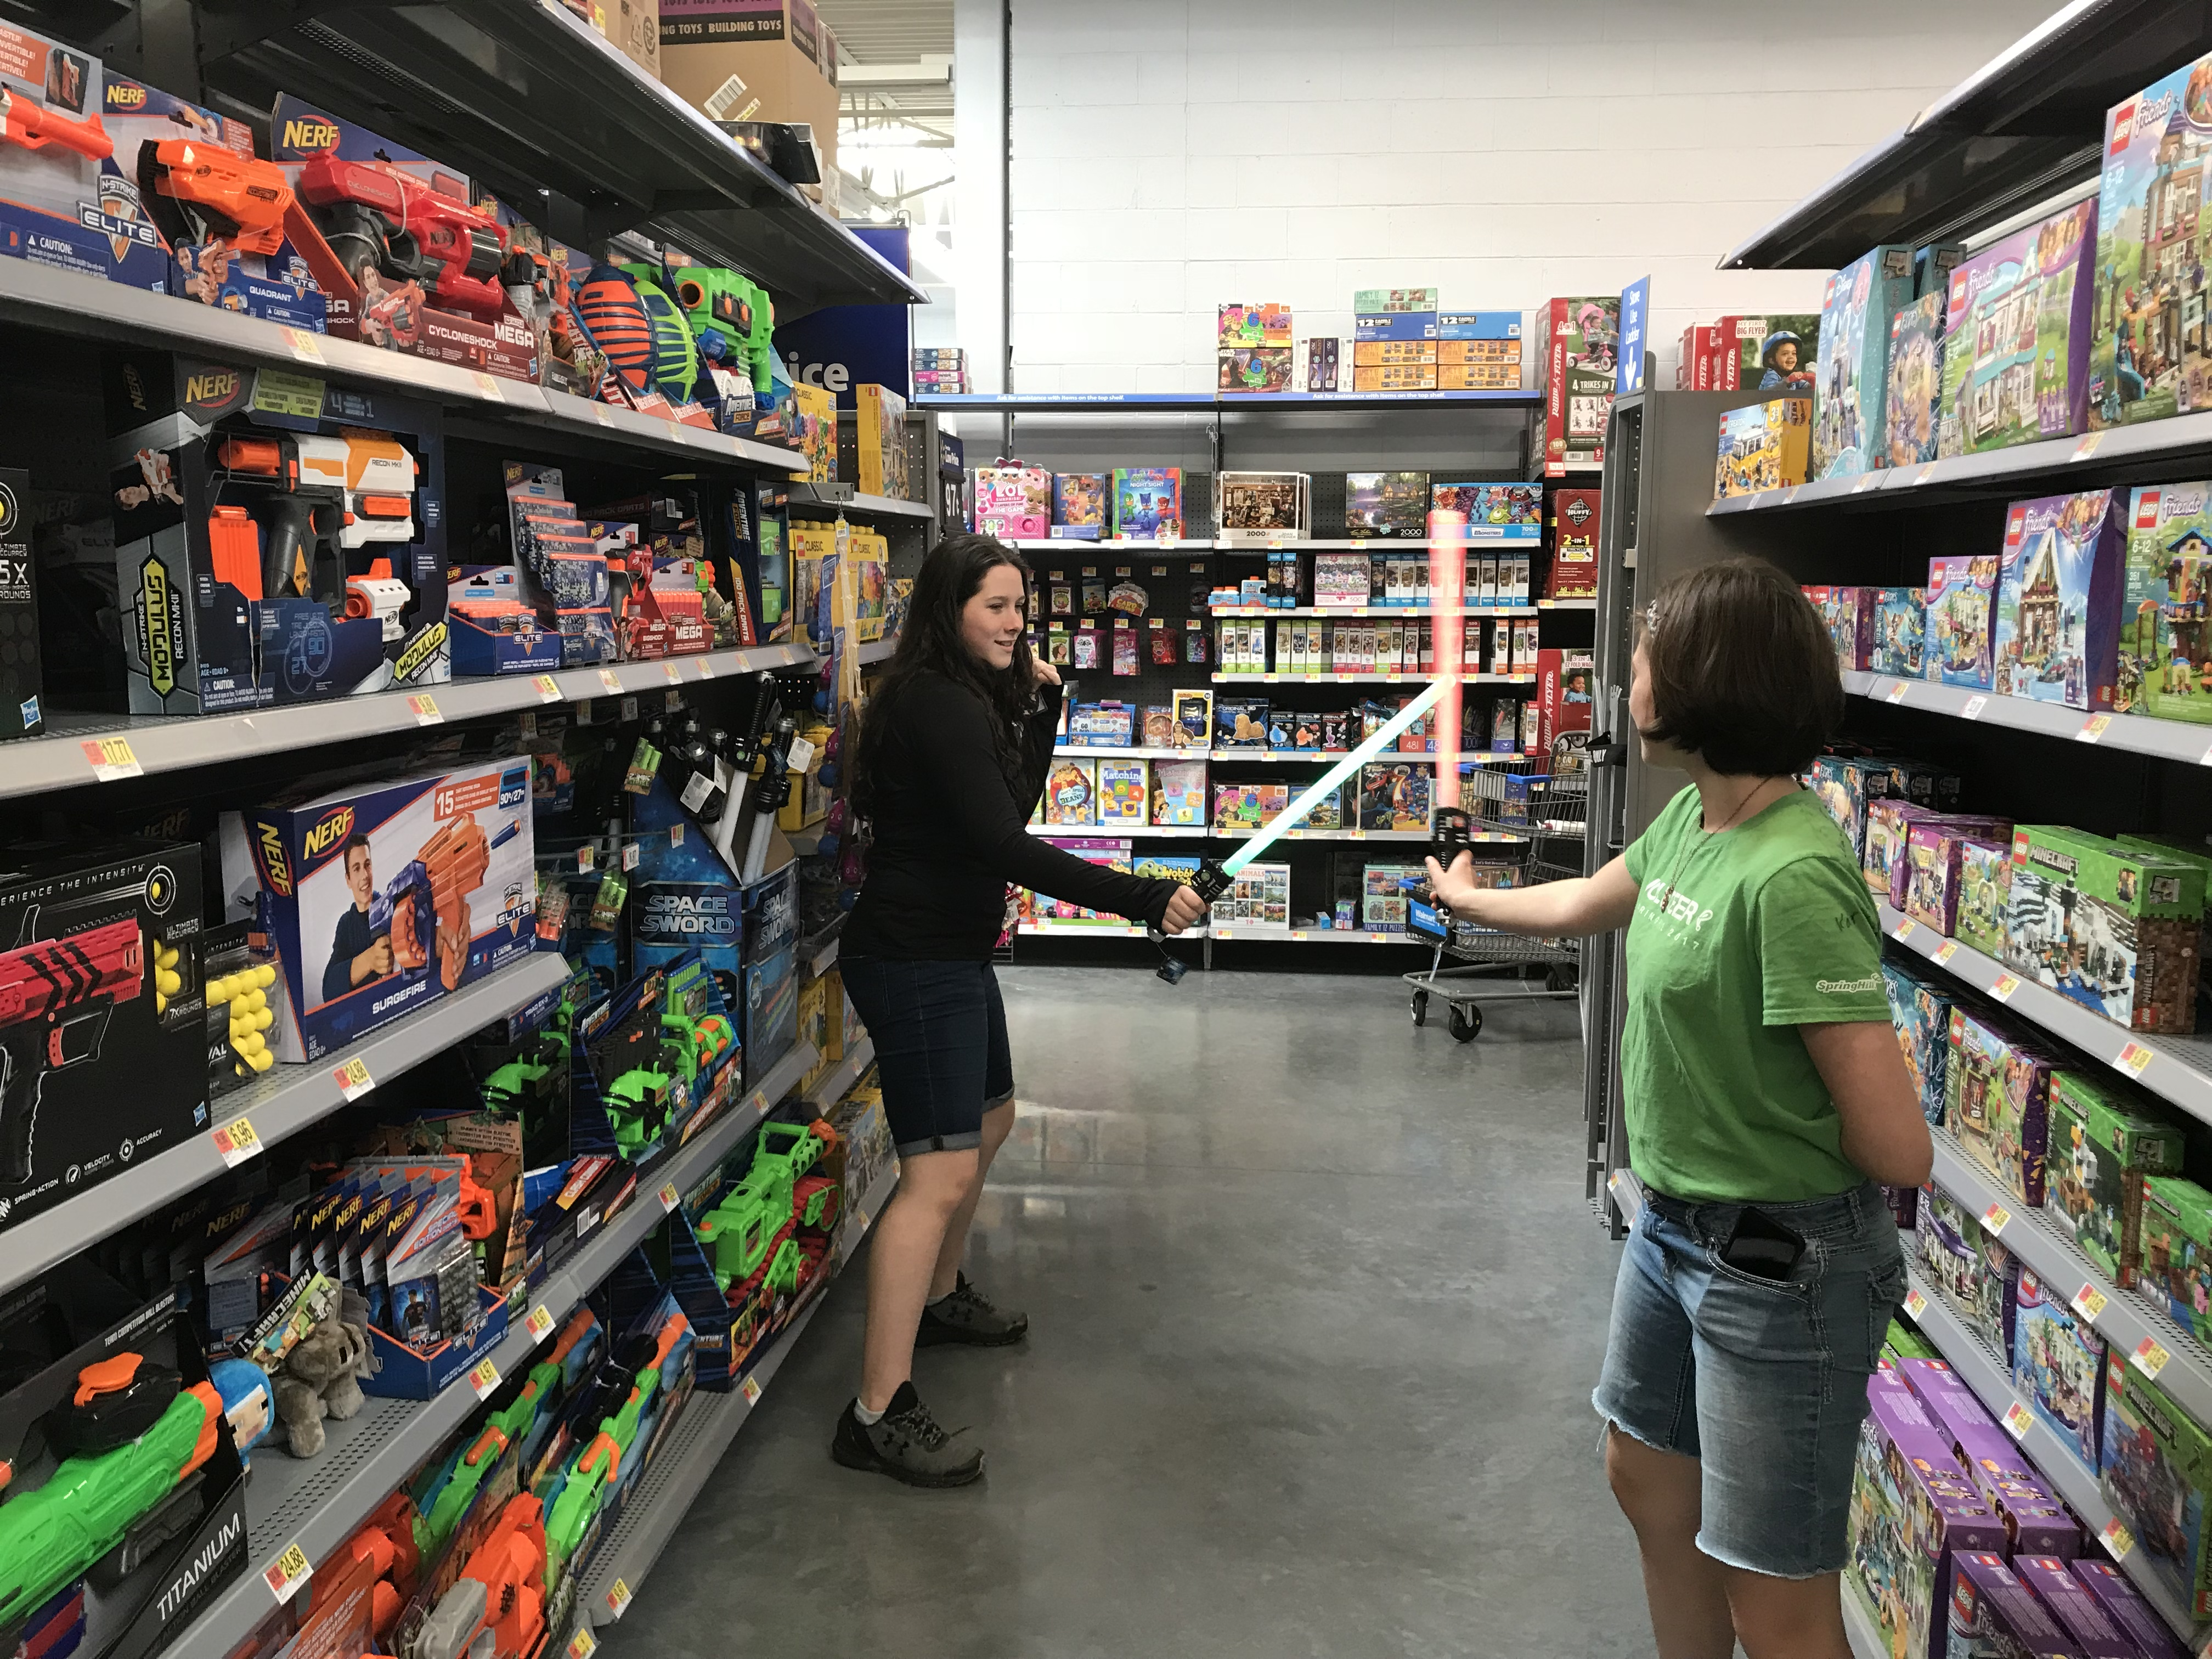 Elie and I had an epic lightsaber battle in the toy aisle at Walmart.